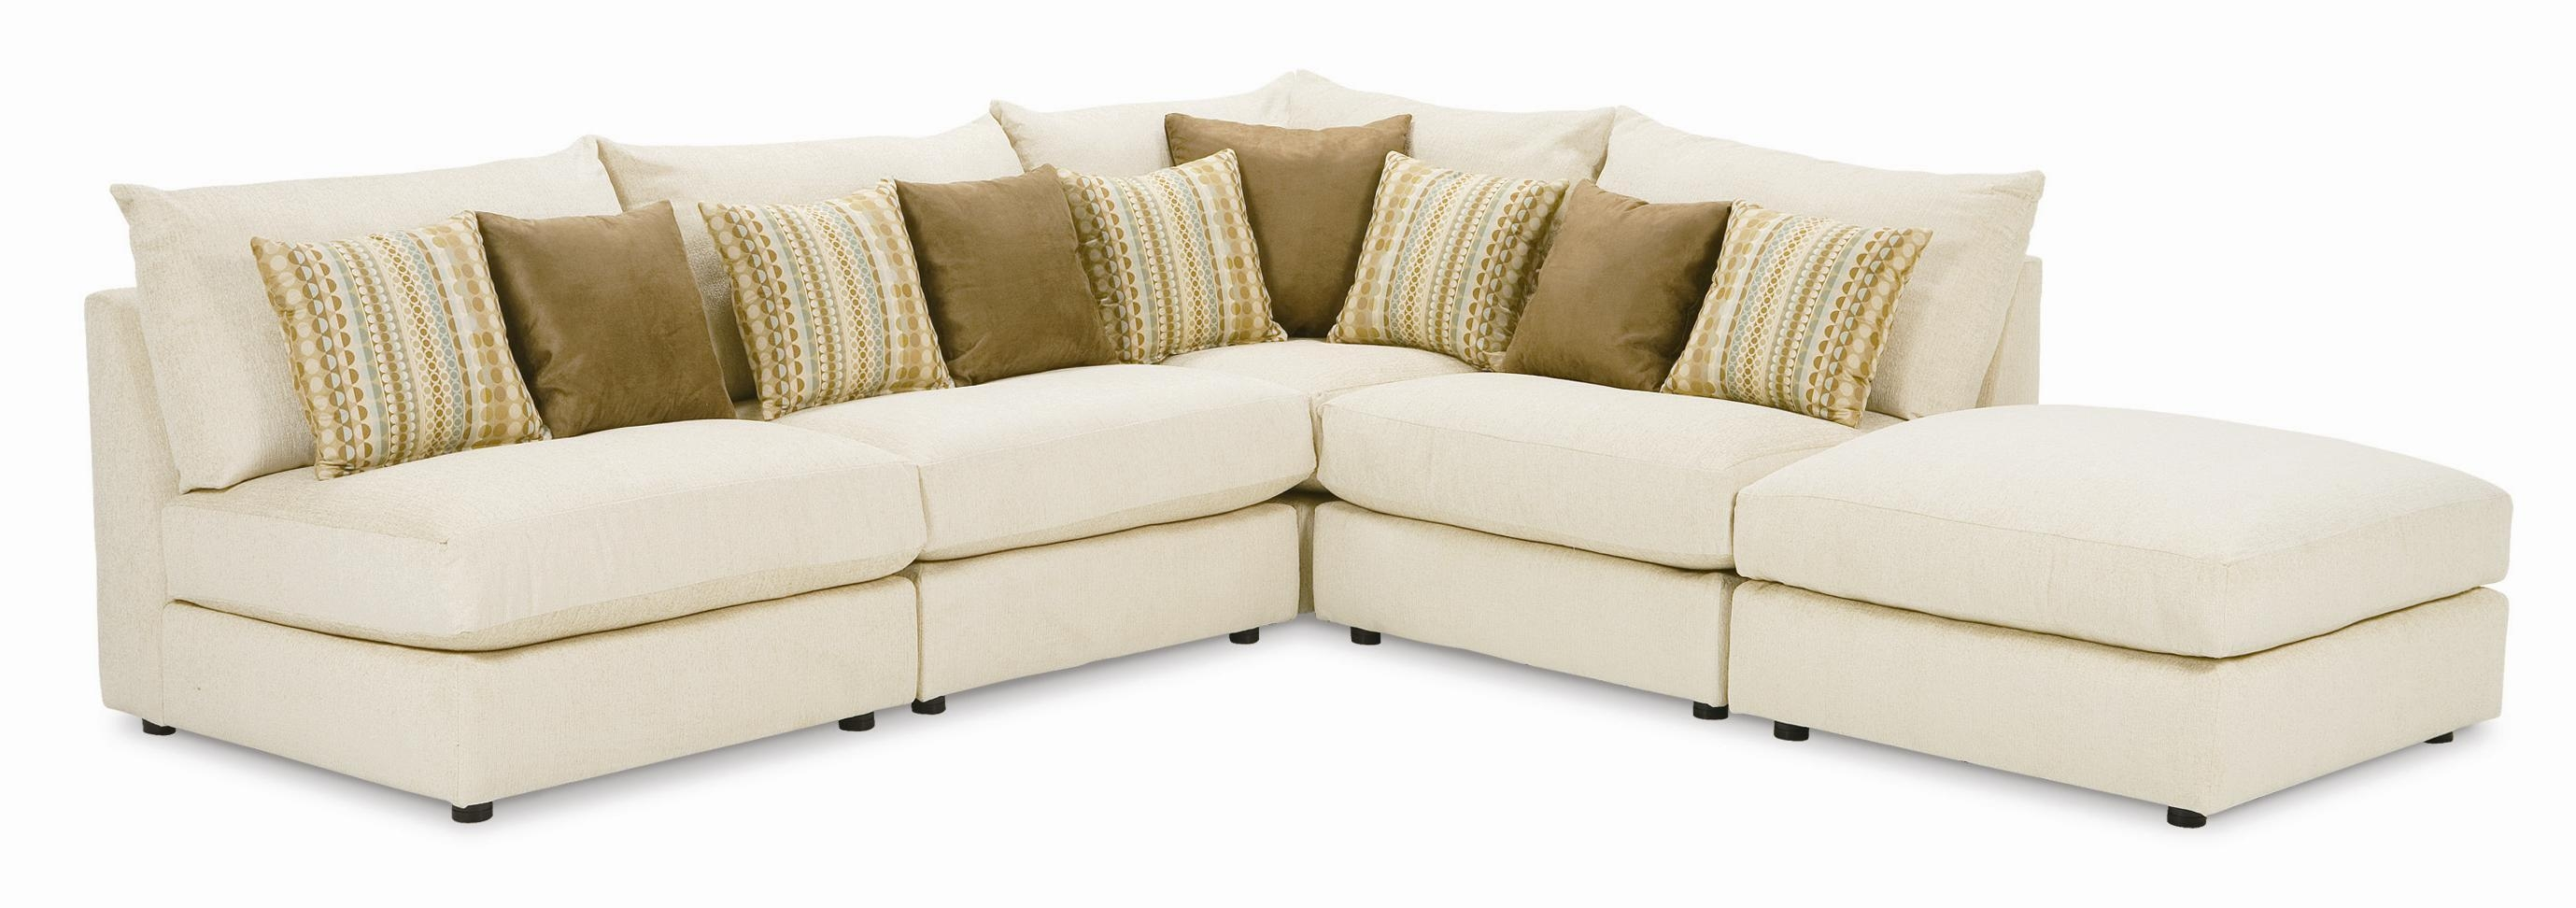 Rowe Tempo Five Piece Armless Sectional Sofa – Ahfa – Sofa Throughout Individual Piece Sectional Sofas (View 7 of 20)